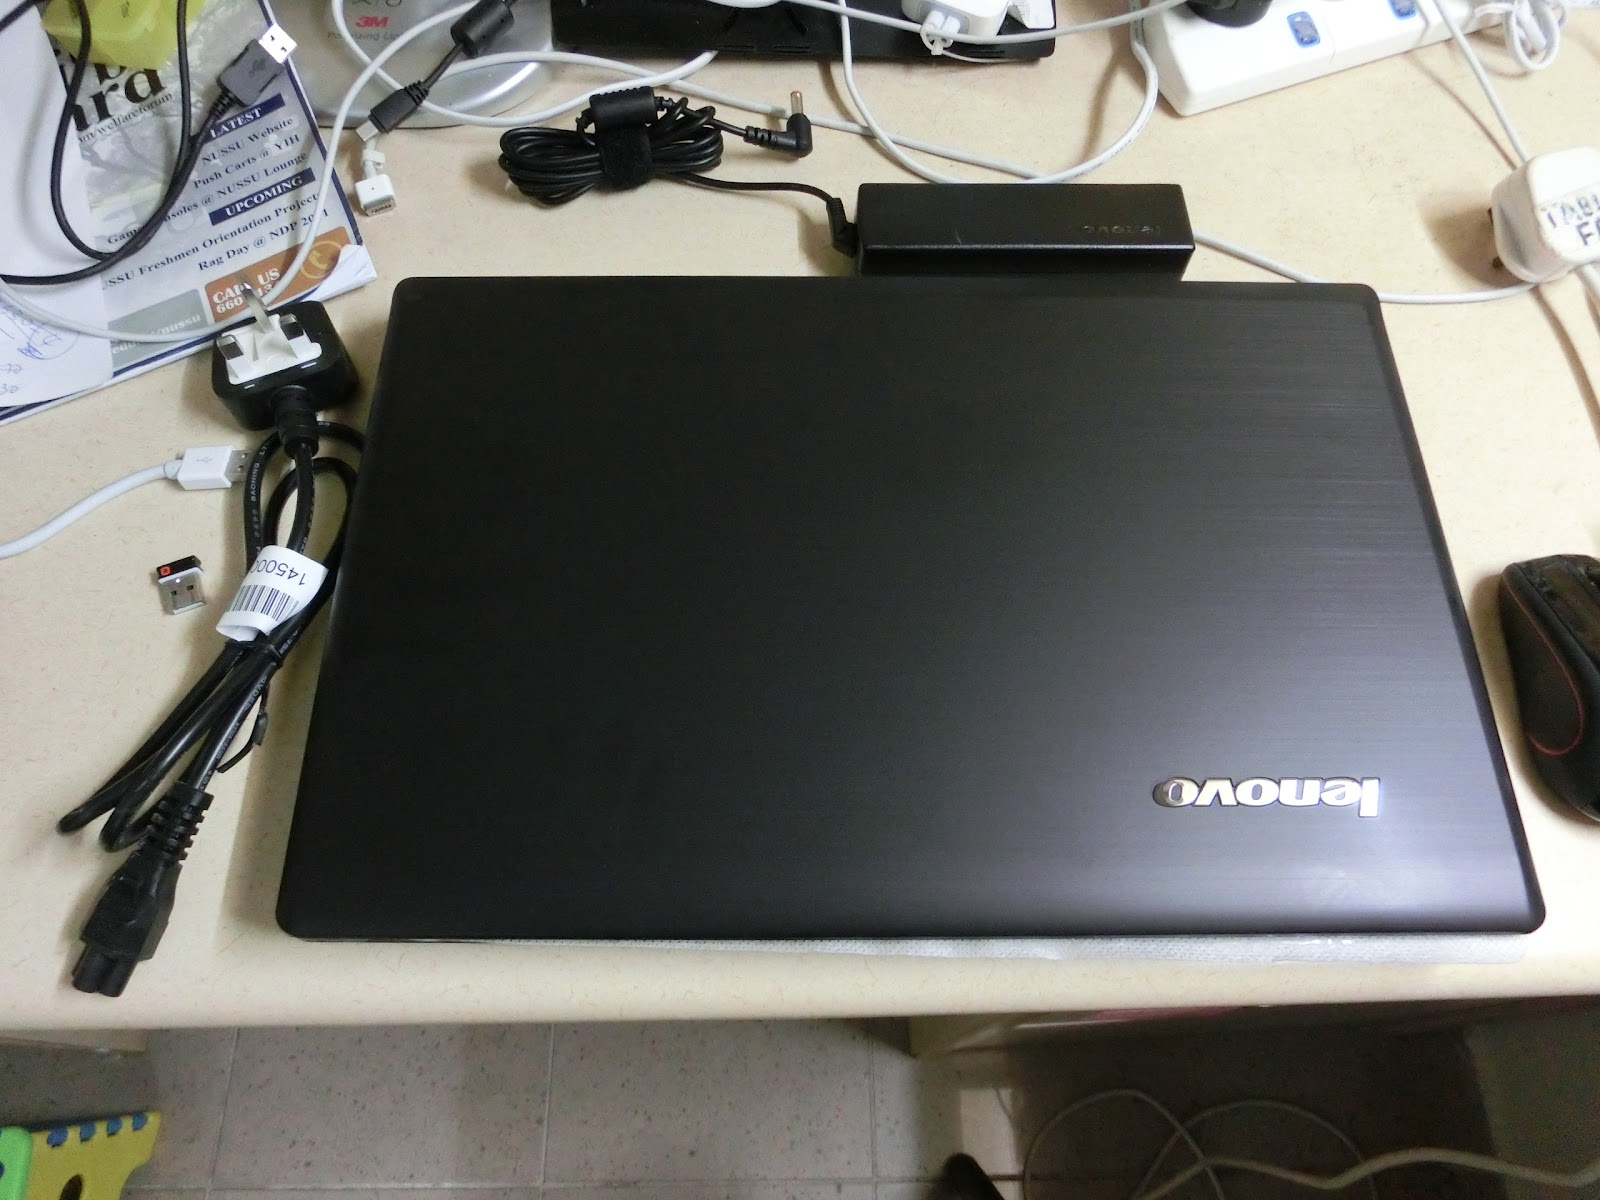 How To Turn Fan On In Lenovo G580